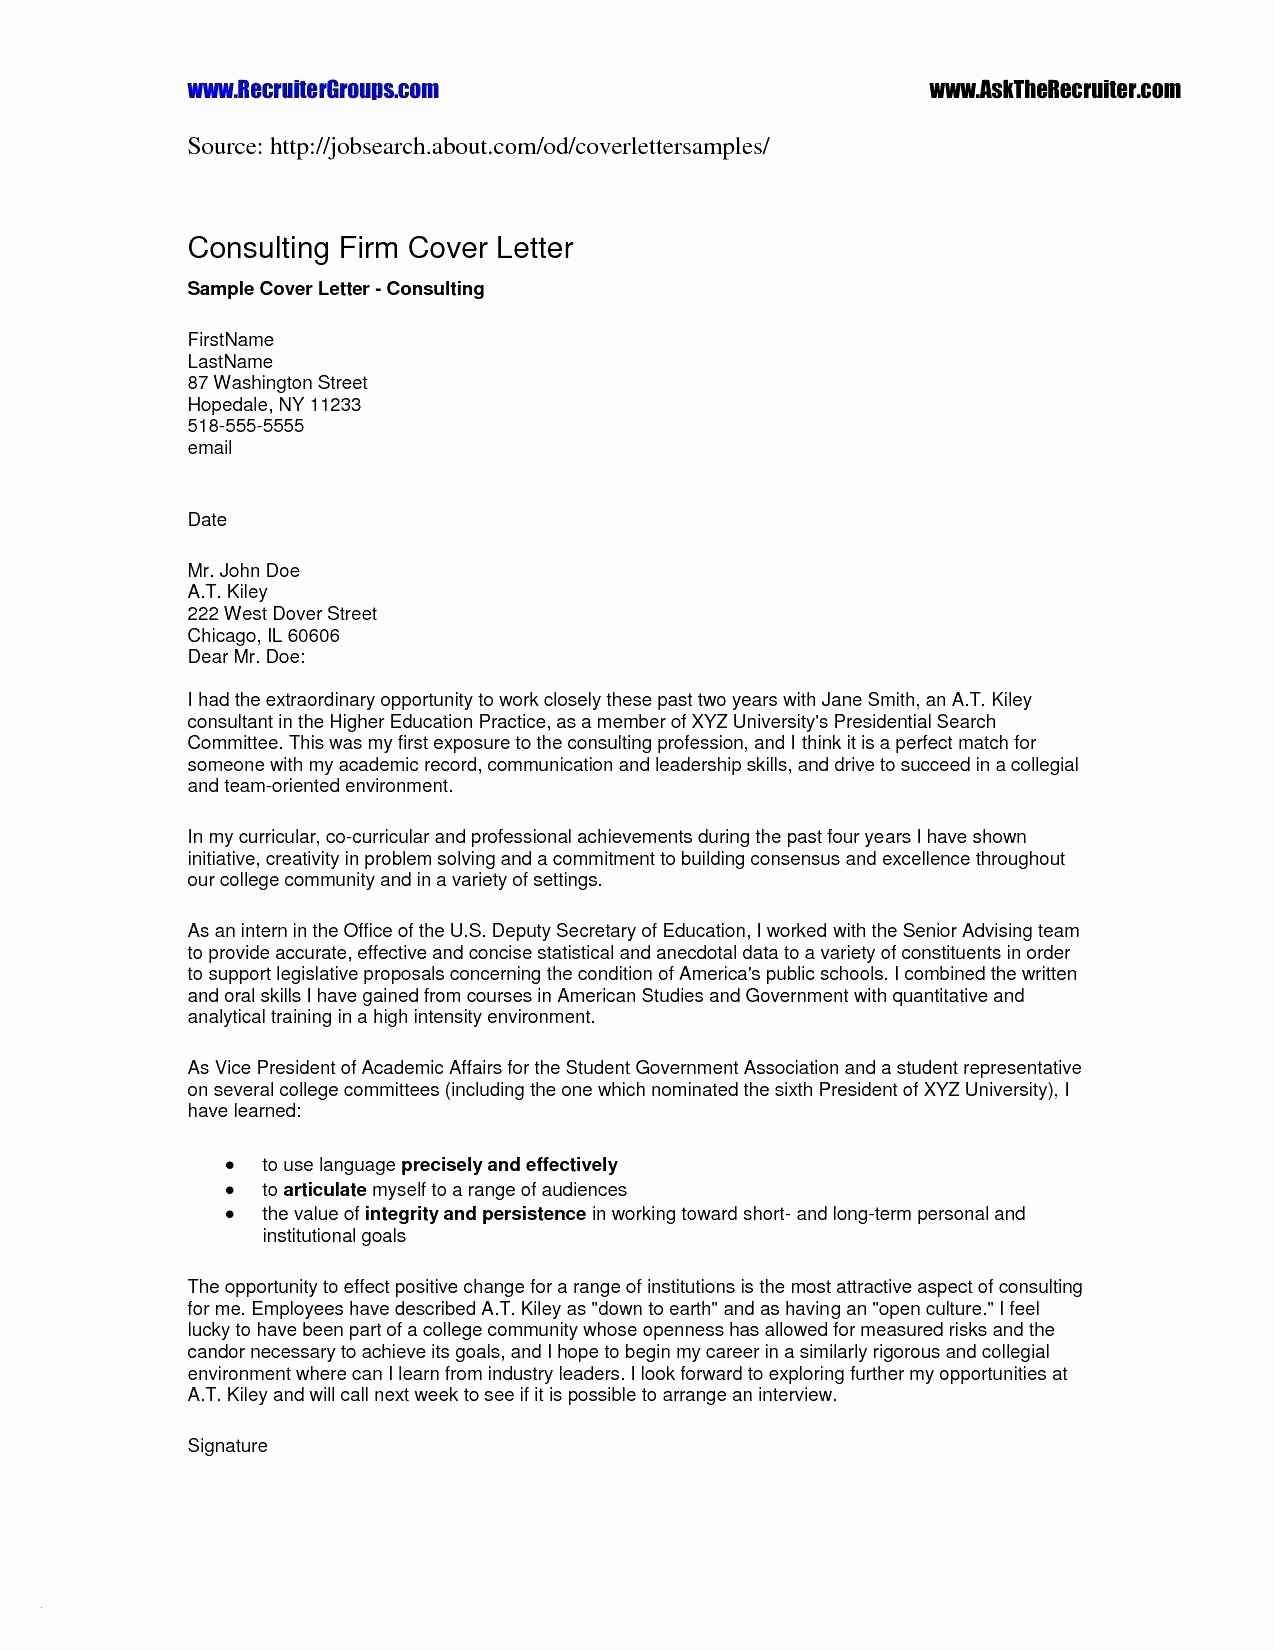 event coordinator resume template Collection-Event Planner Cover Letter Sample Save 39 New Event Manager Cover Letter Beautiful Resume Ideas 13-j